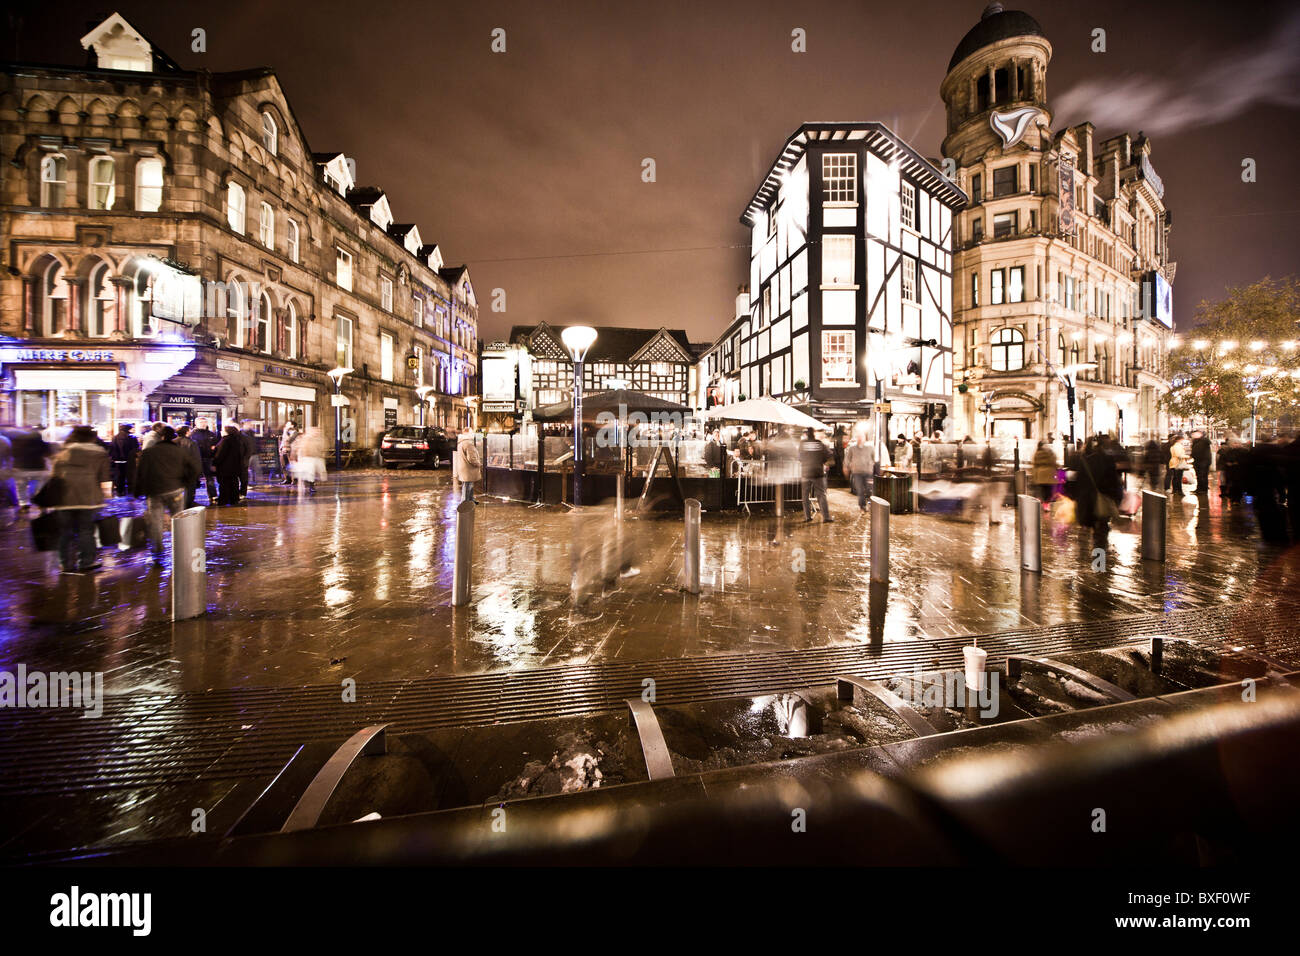 Late night shopping in manchester - Stock Image